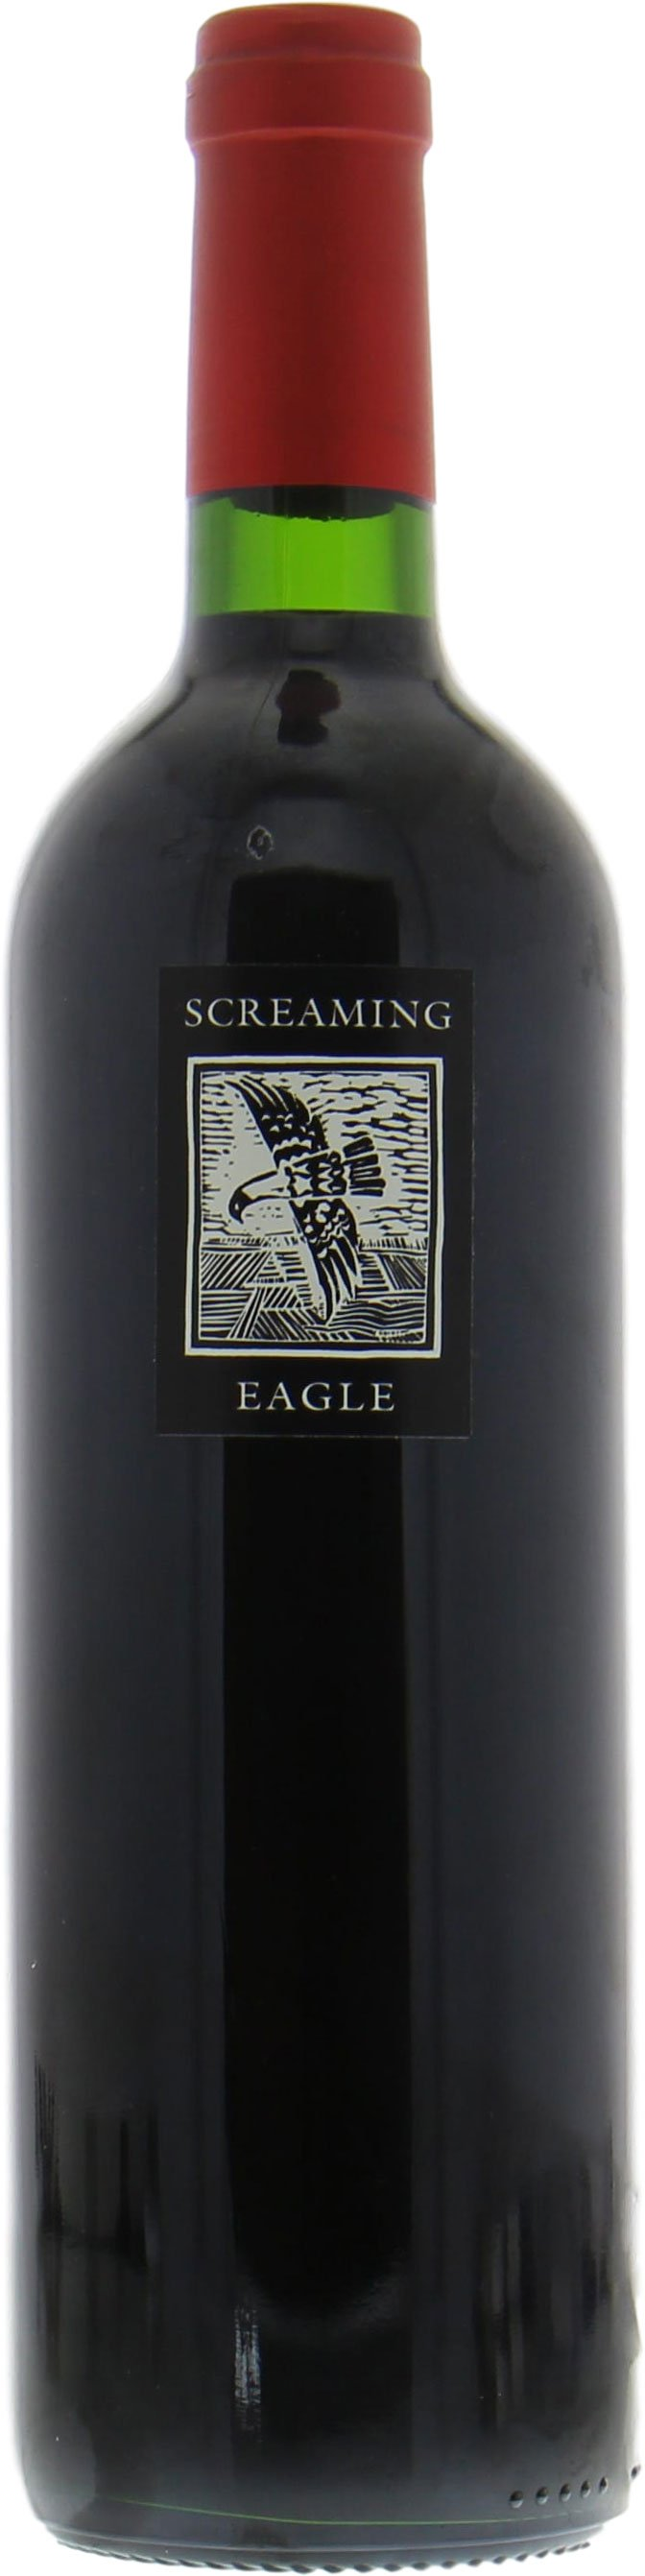 Screaming Eagle - Cabernet Sauvignon 2008